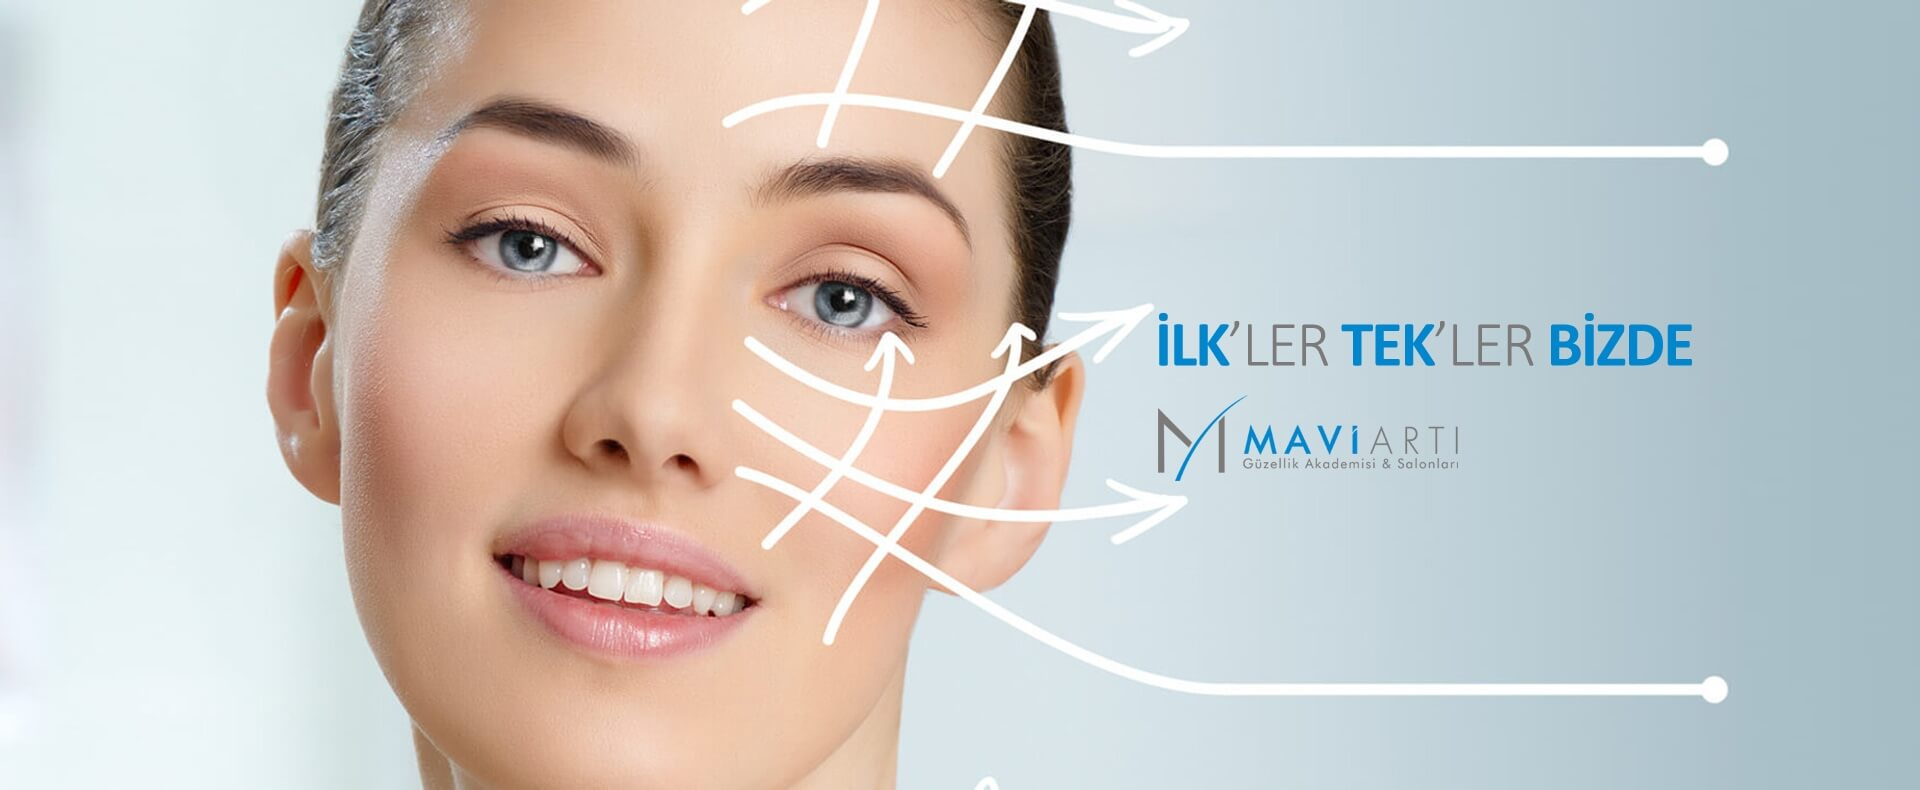 Mavi Artı Aesthetics Academy and Beauty Salons